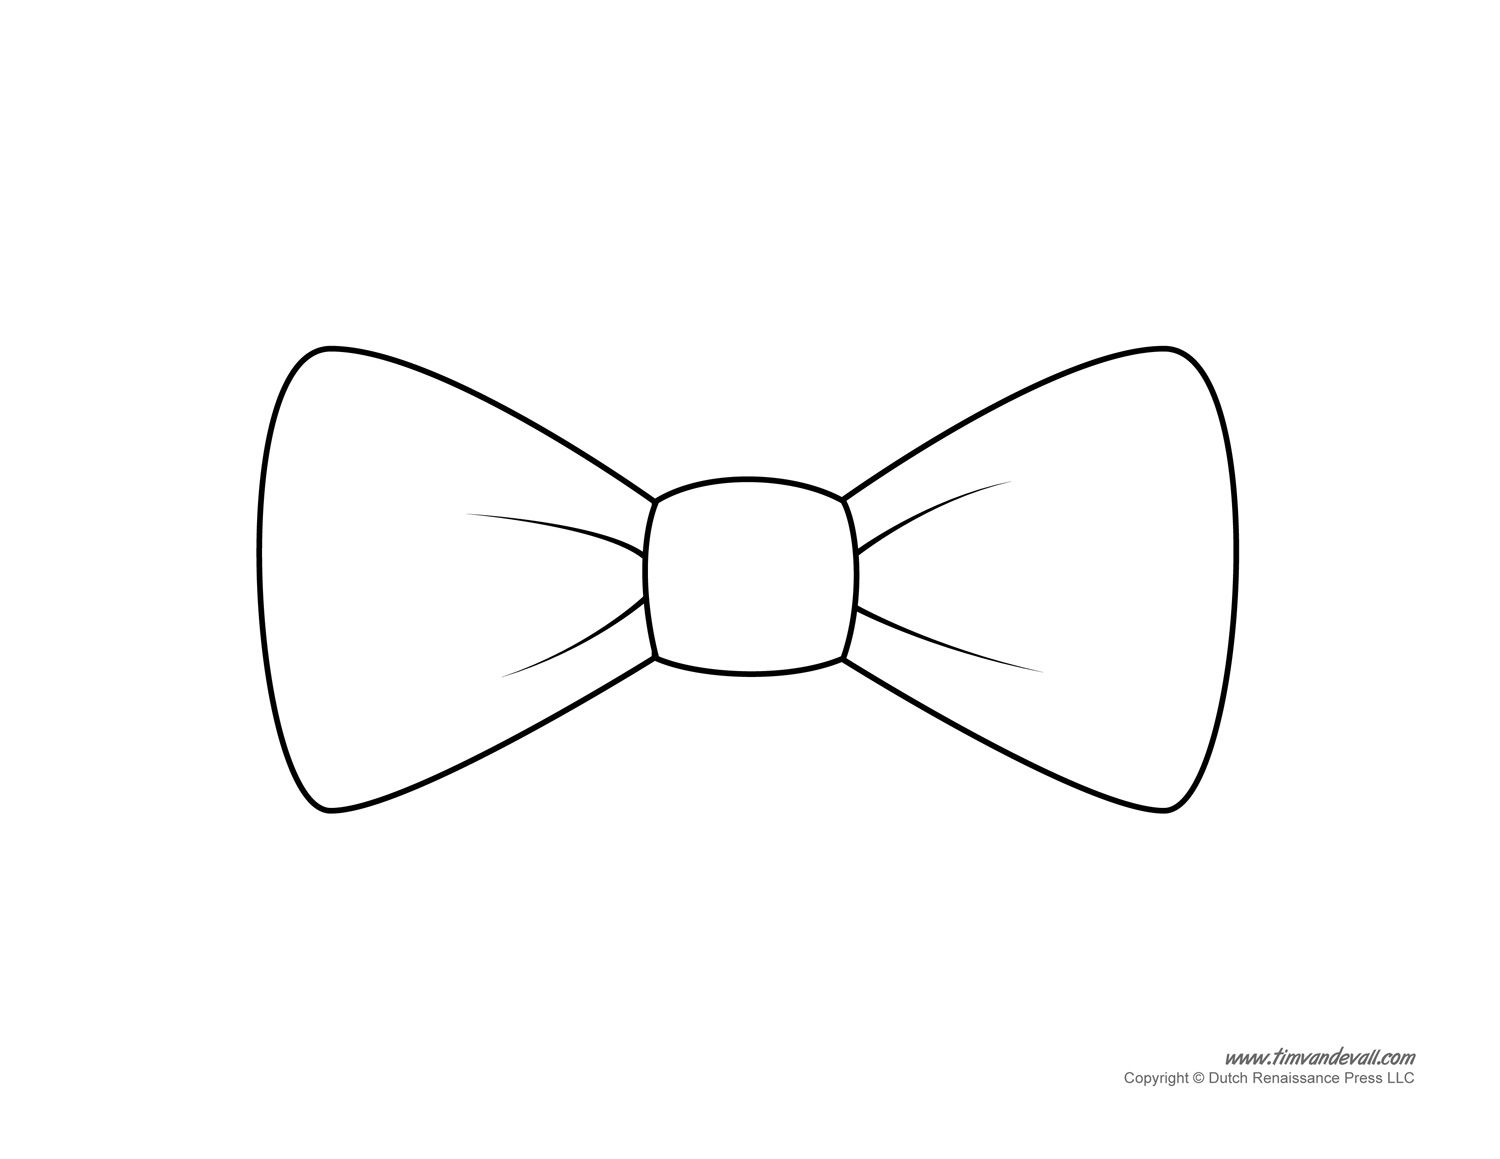 Printable bow tie clipart picture free library Bow Tie Clipart To Printable | SVG Files | Bow tie template ... picture free library